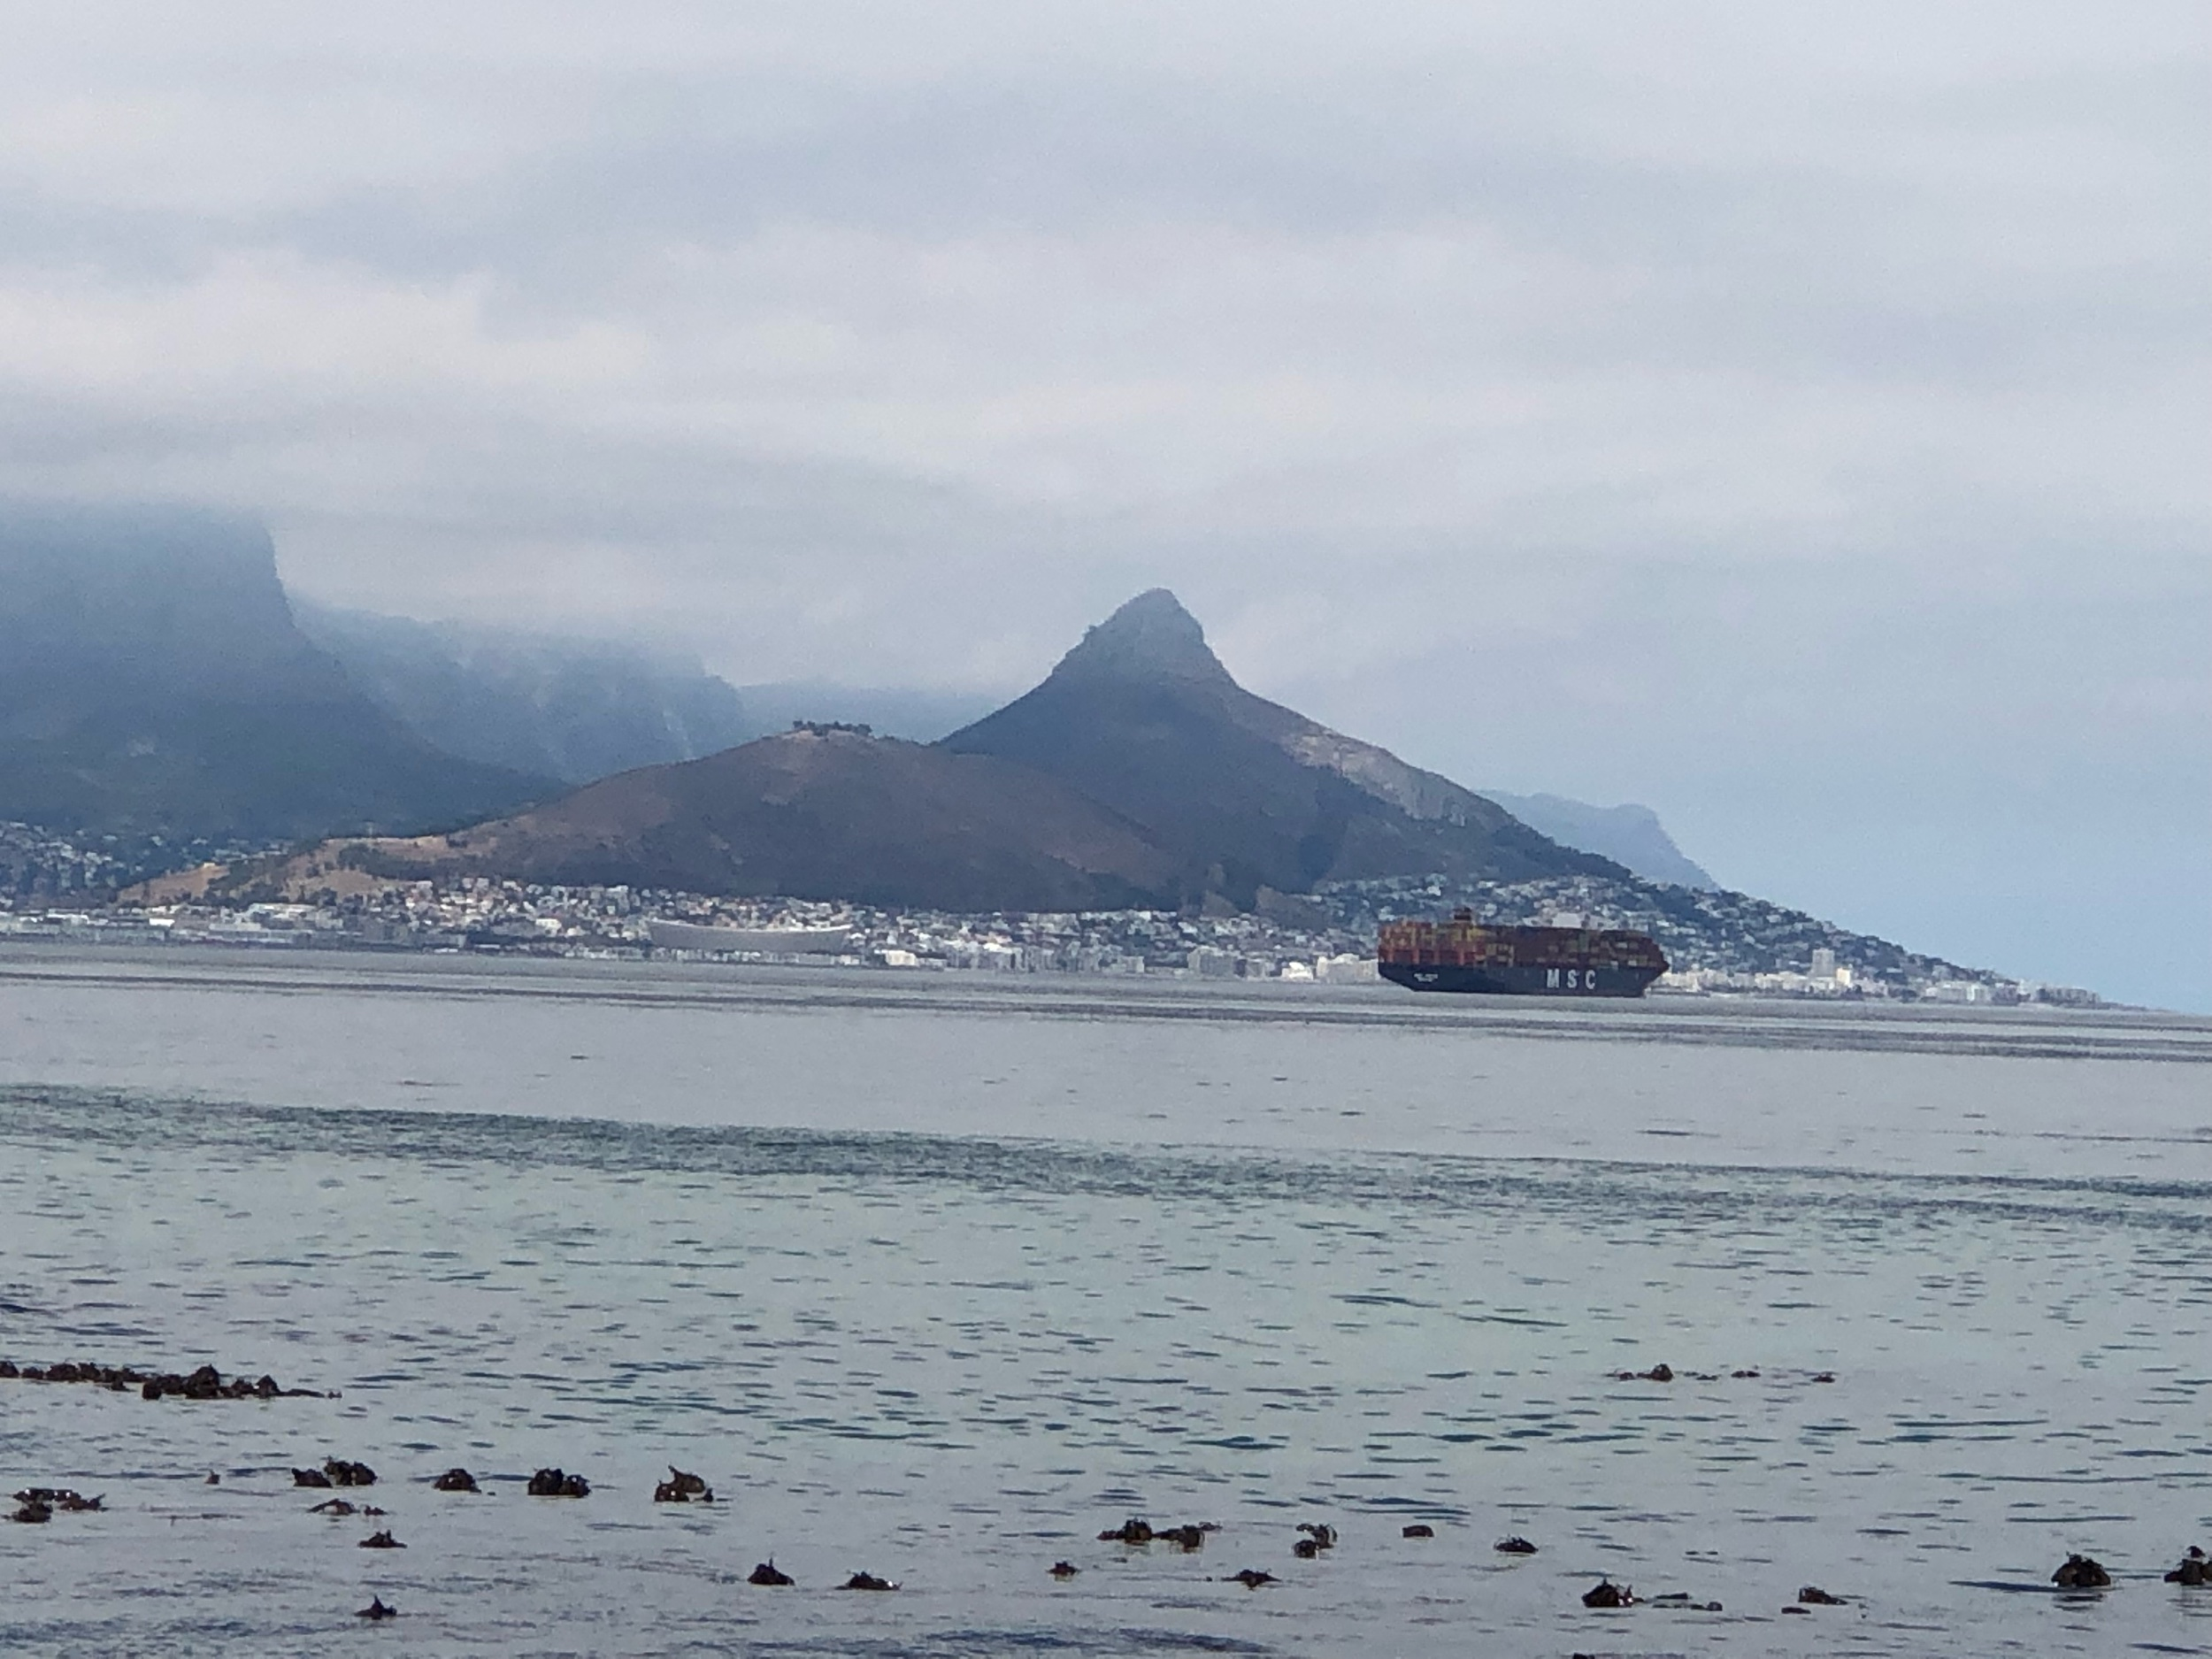 Across the bay from Signal Hill and Lion's Head